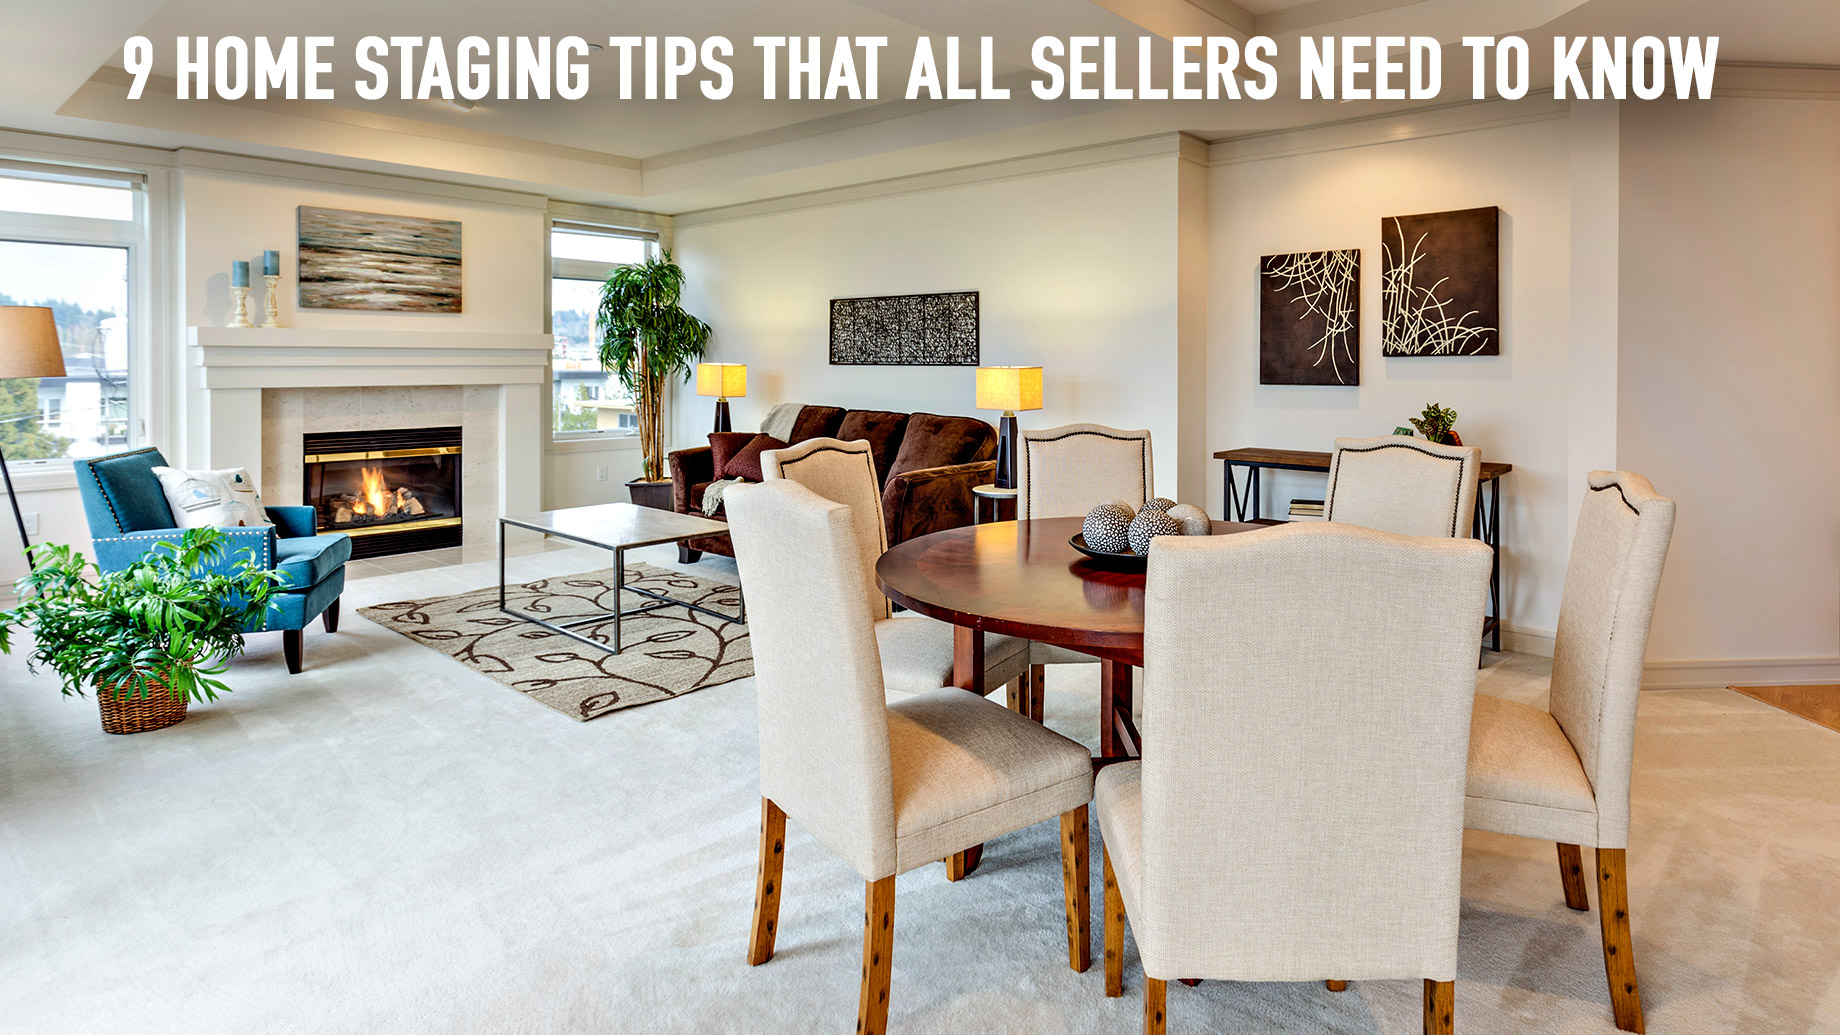 9 Home Staging Tips That All Sellers Need to Know